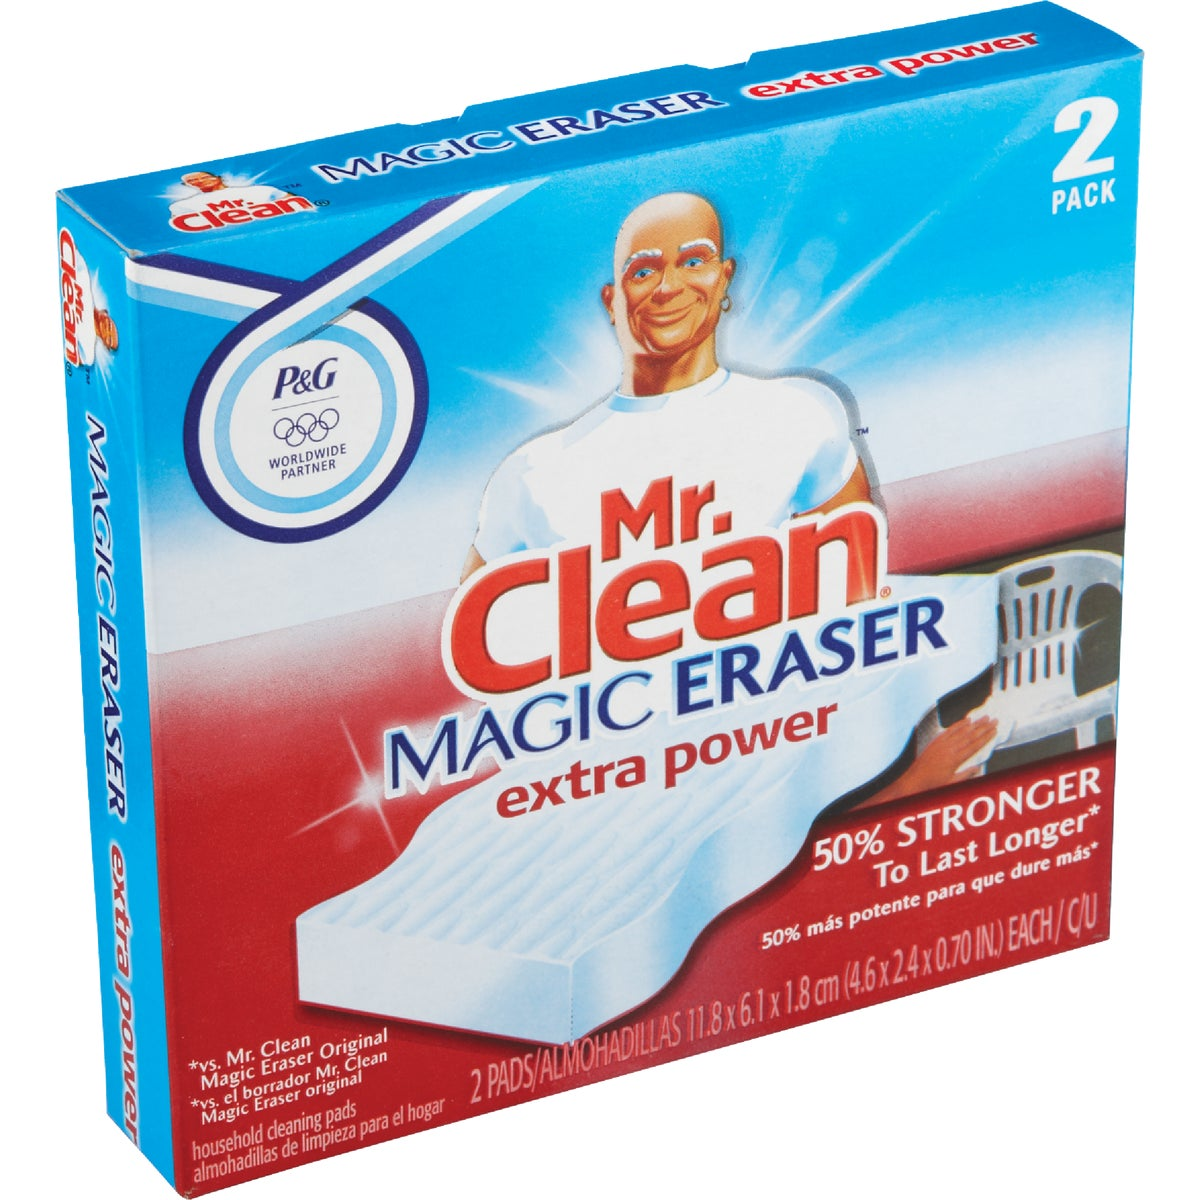 MR CLEAN MAGIC ERASER - 04249 by Procter & Gamble